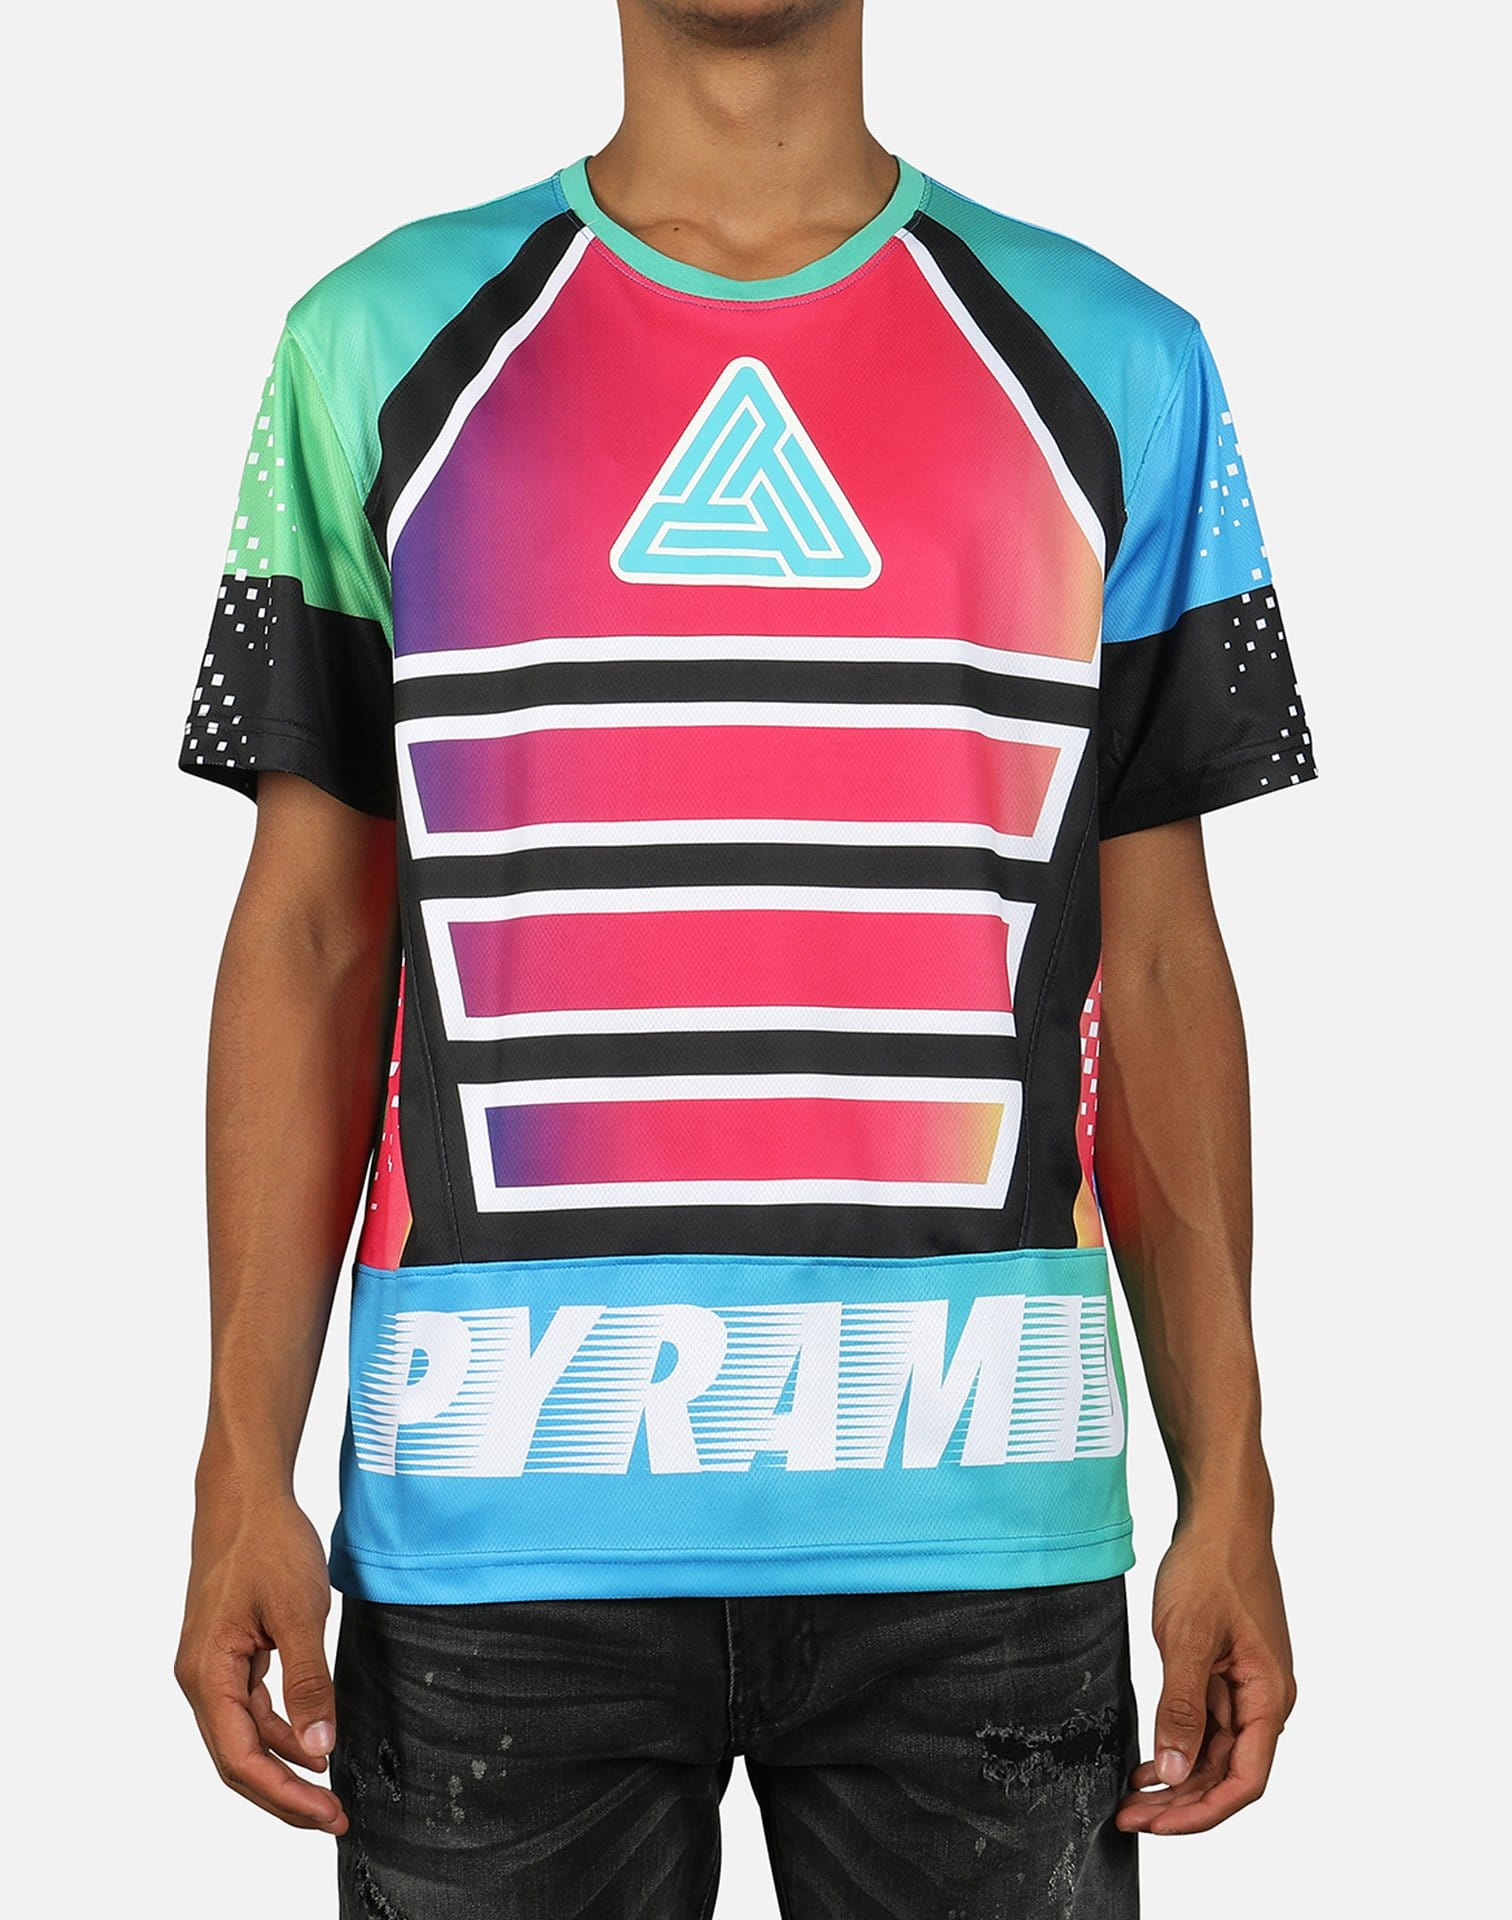 Black Pyramid Men's Graded Speed Knit Tee